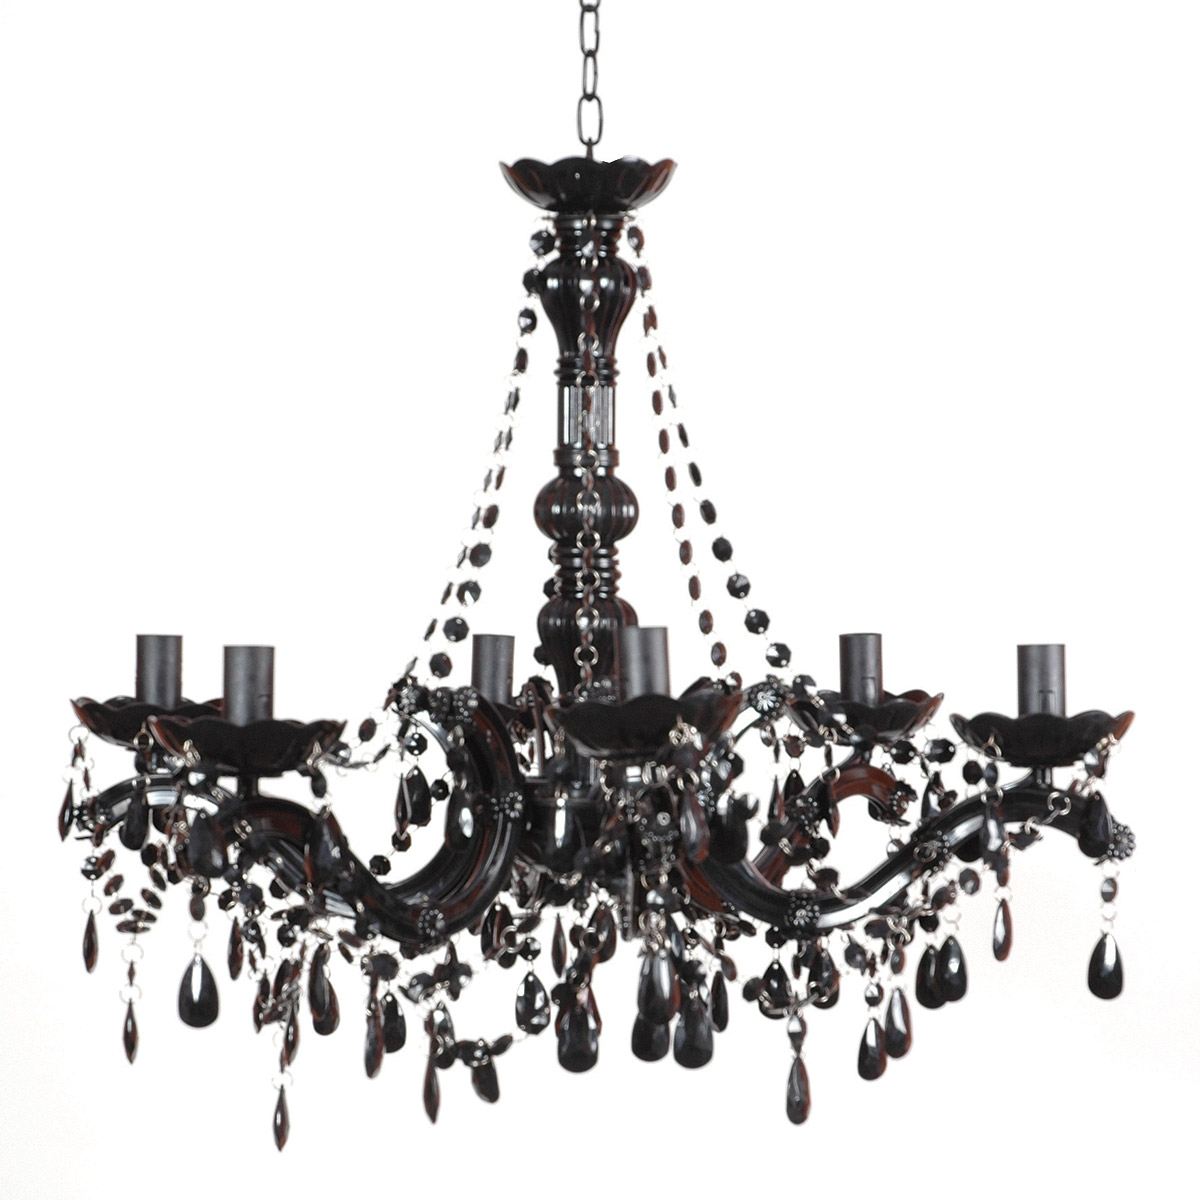 Small Chandeliers For Large Size Of Crystal And Black Chandelier Intended For Large Black Chandelier (Photo 15 of 15)